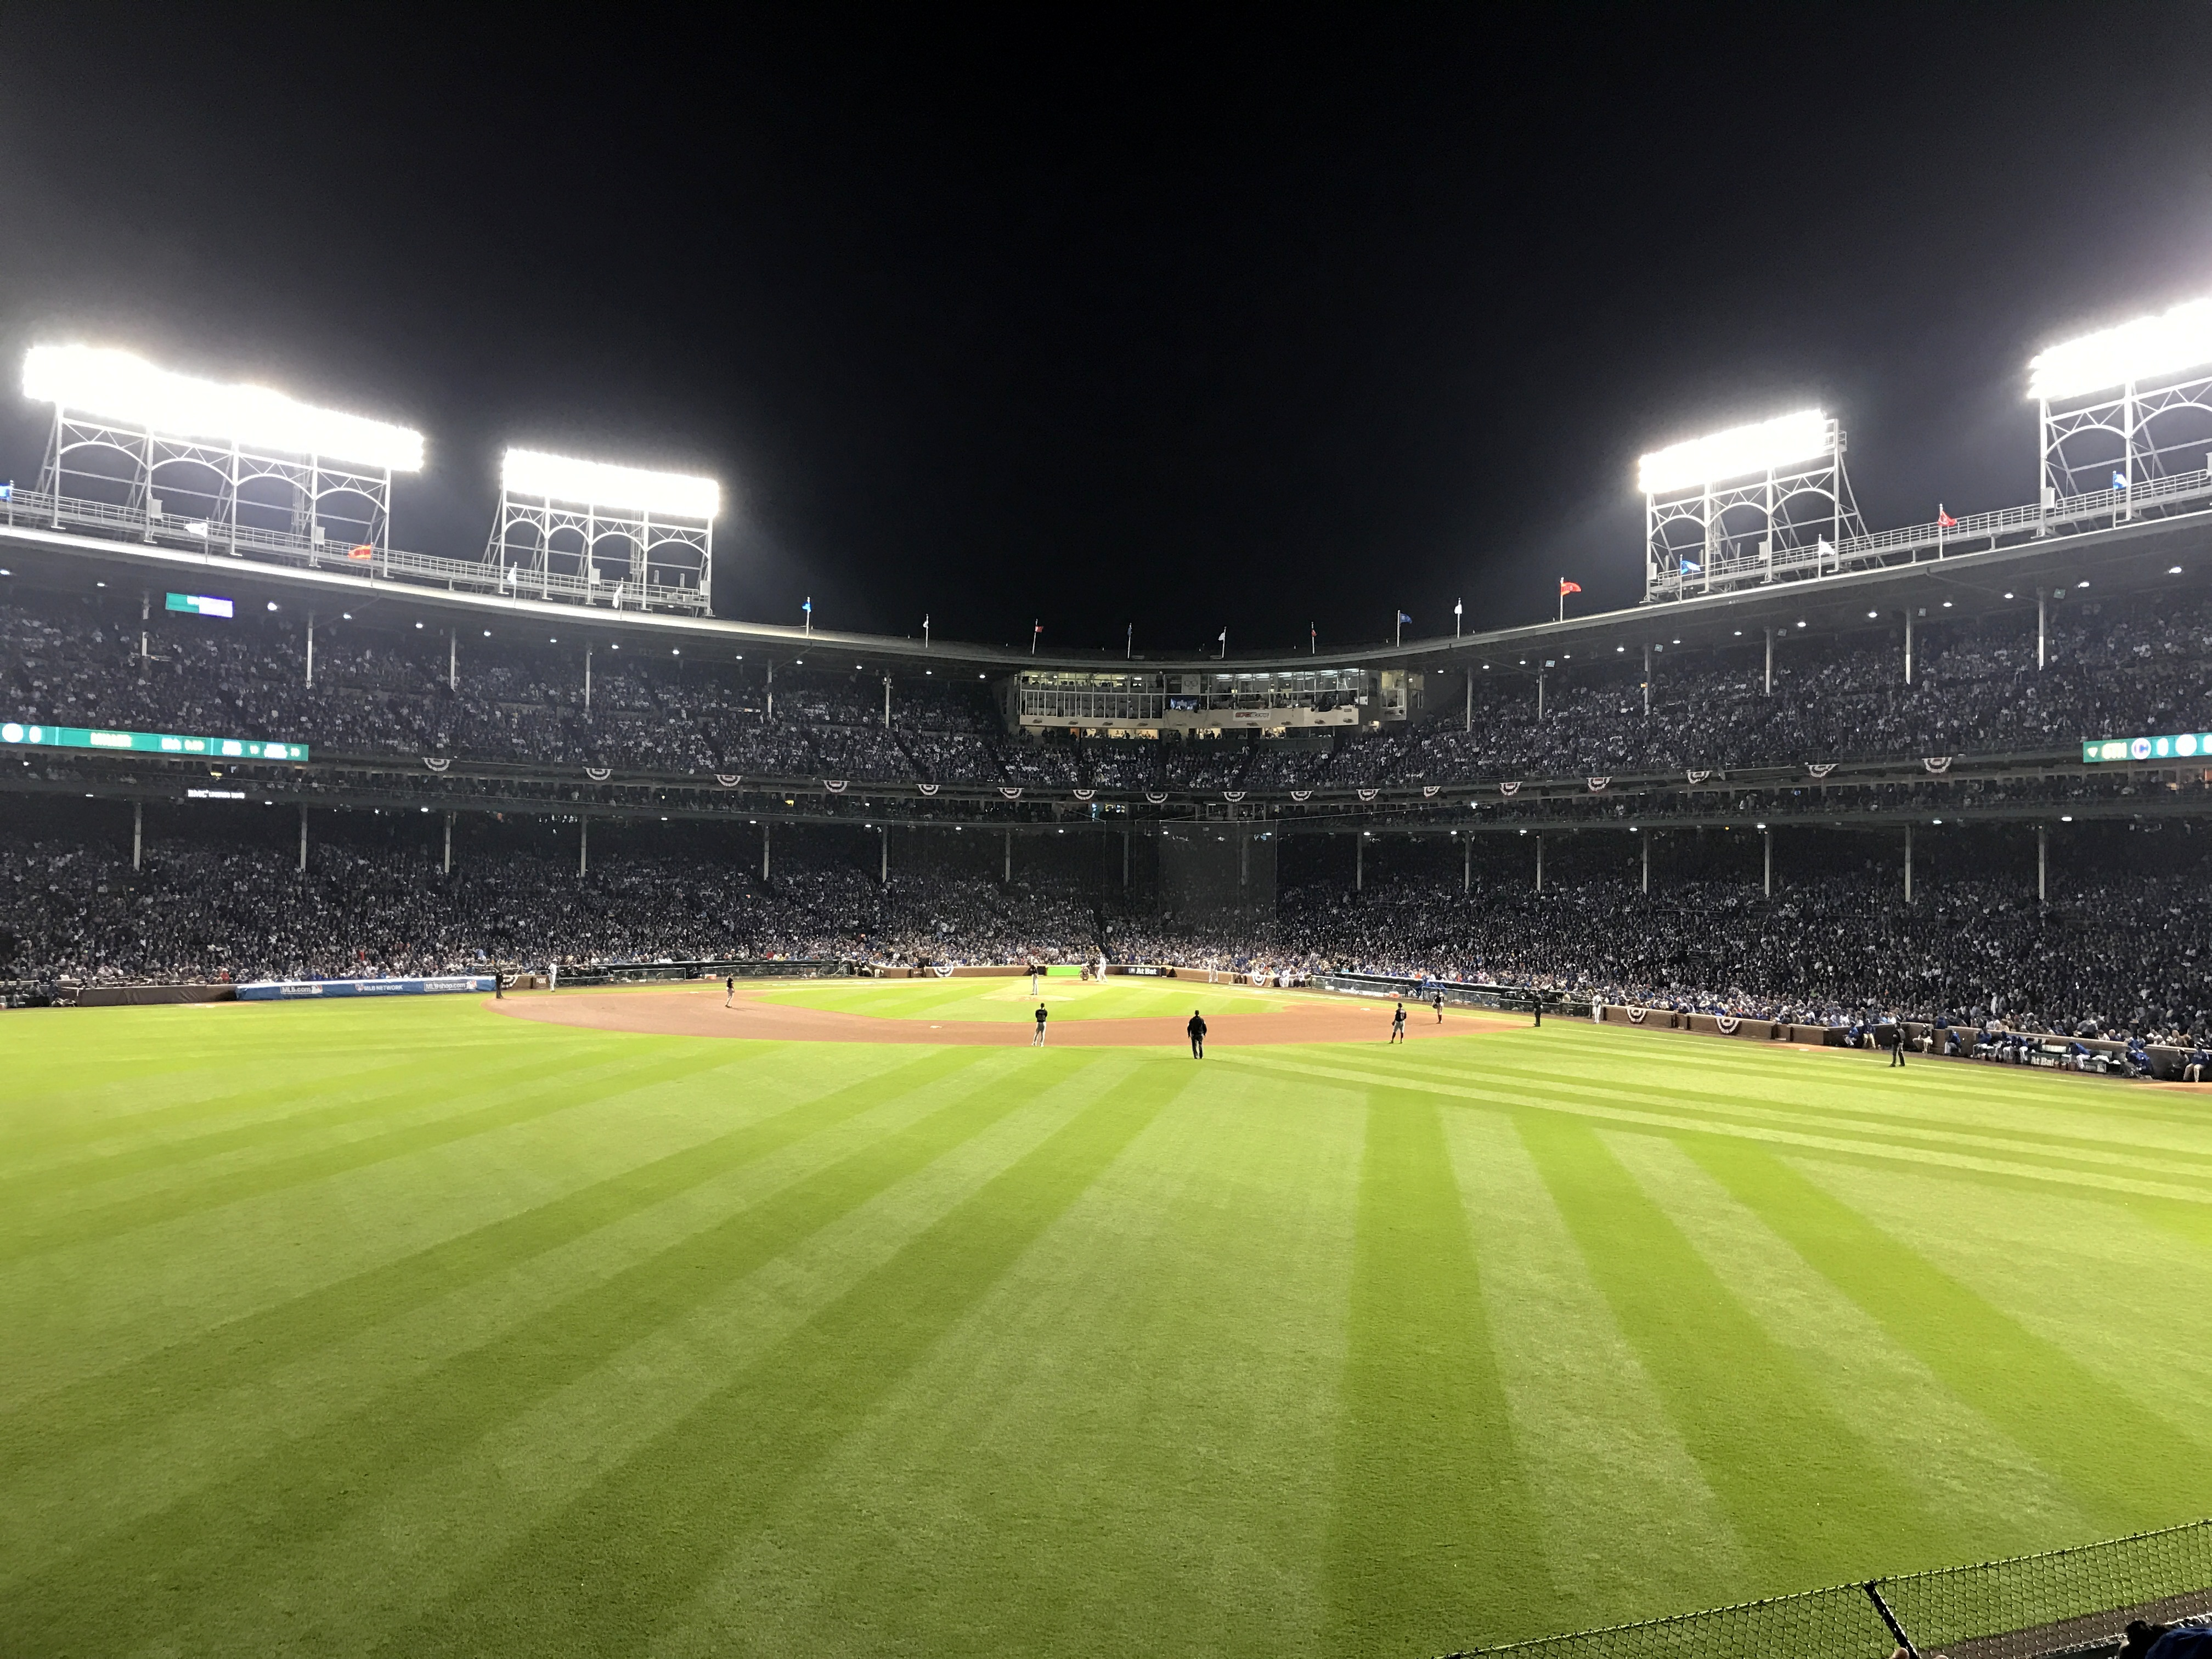 File The view from the bleachers at Wrigley Field during World